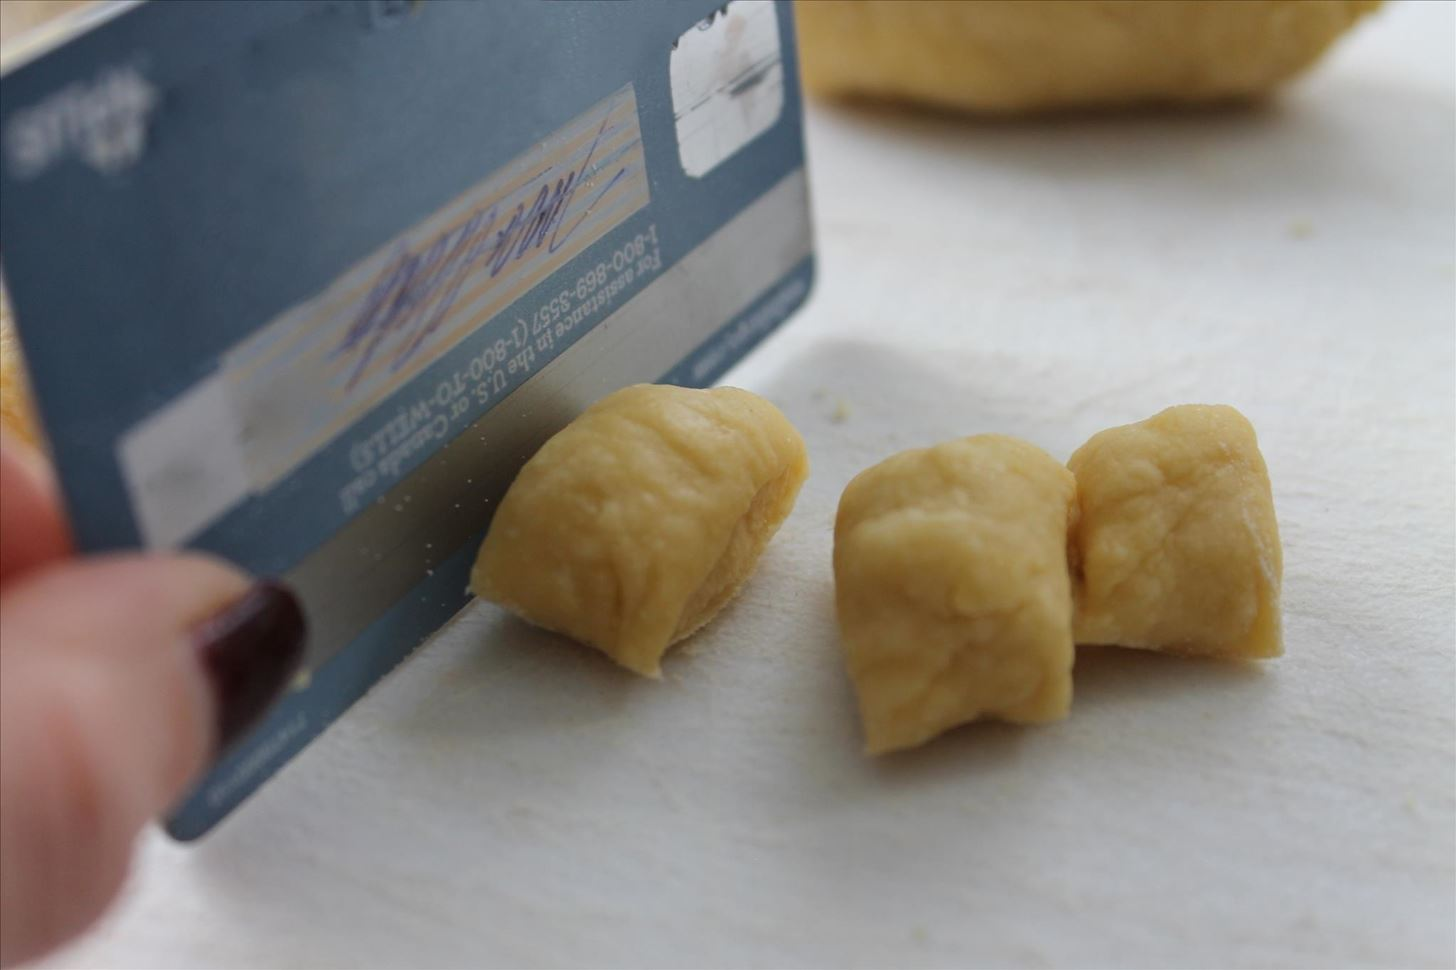 No Knife? Use Your Credit Card to Cut Food Instead